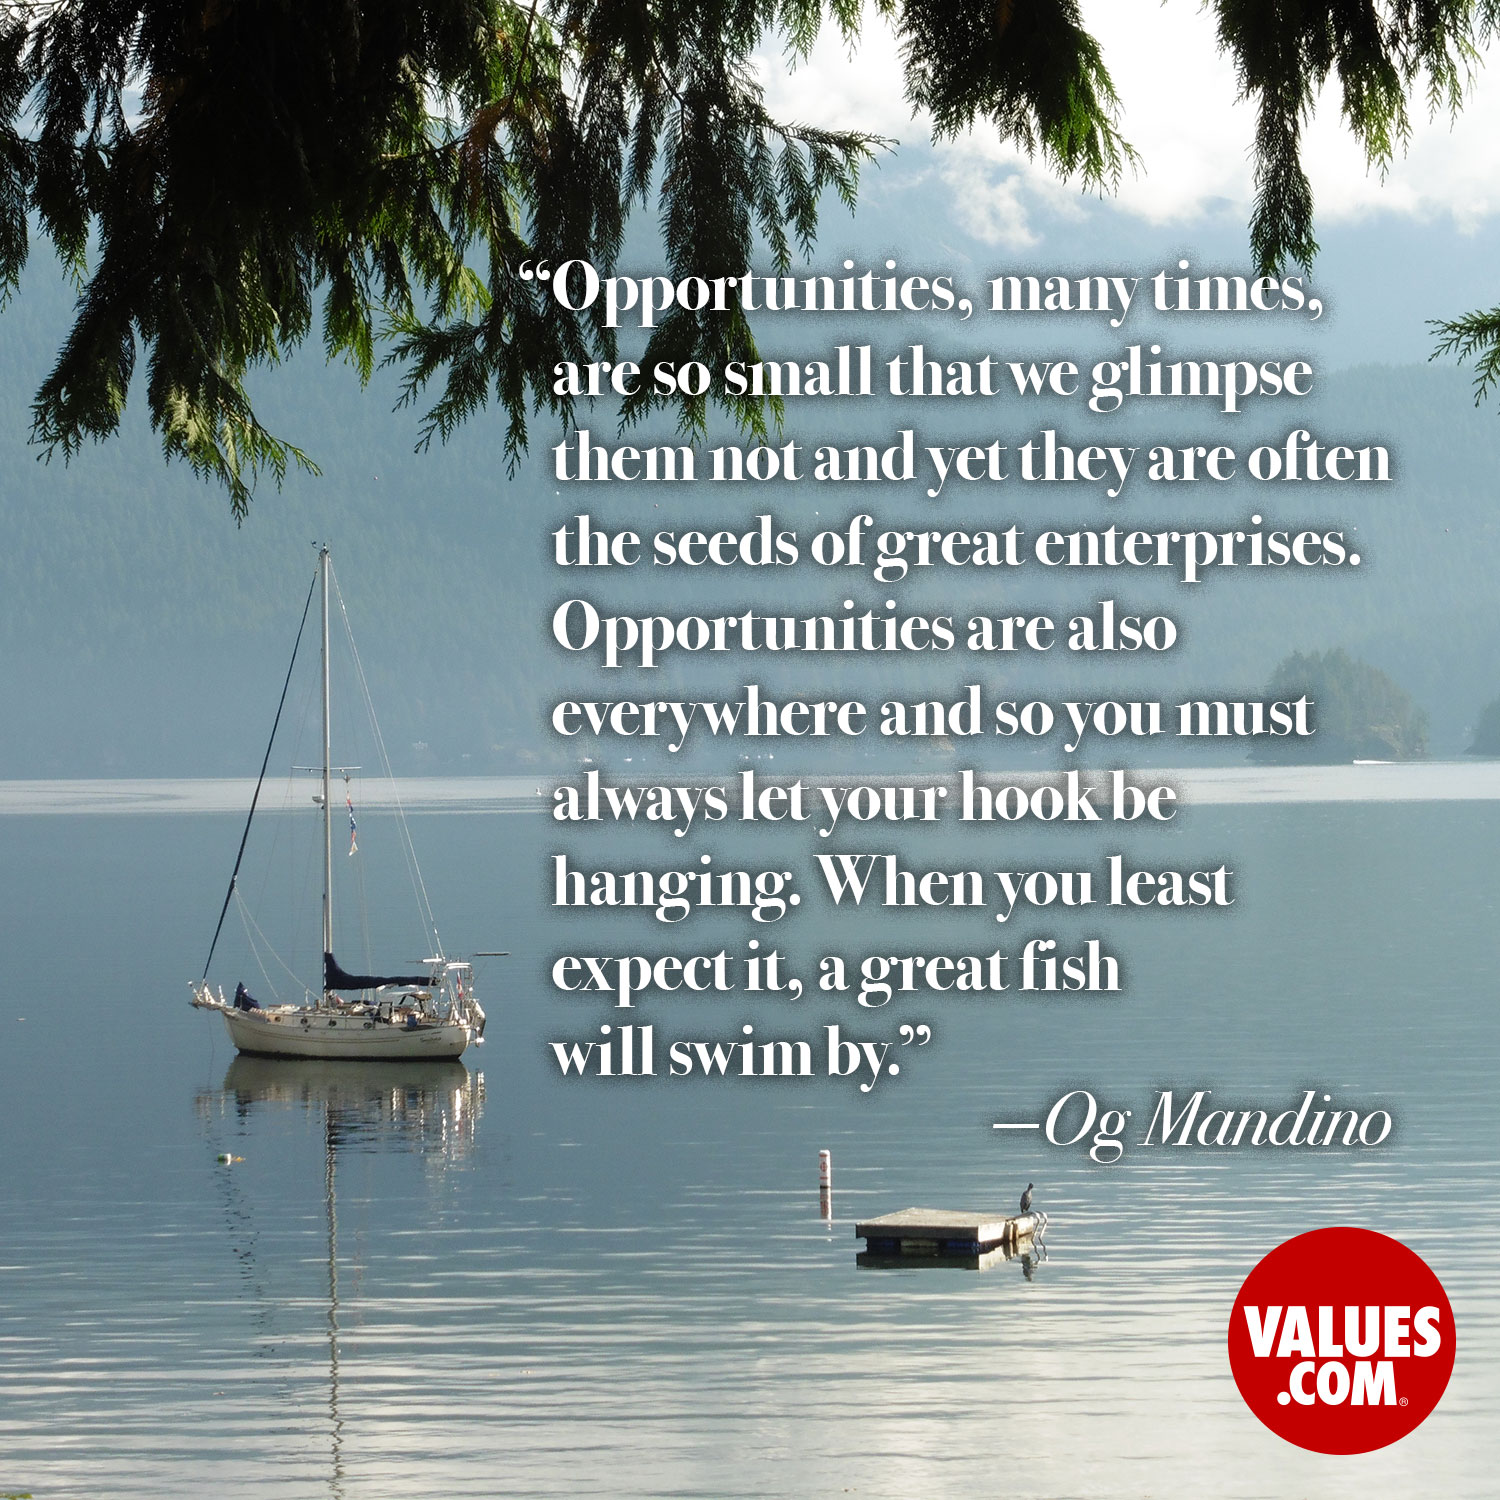 Opportunities, many times, are so small that we glimpse them not and yet they are often the seeds of great enterprises. Opportunities are also everywhere and so you must always let your hook be hanging. When you least expect it, a great fish will swim by. —Og Mandino